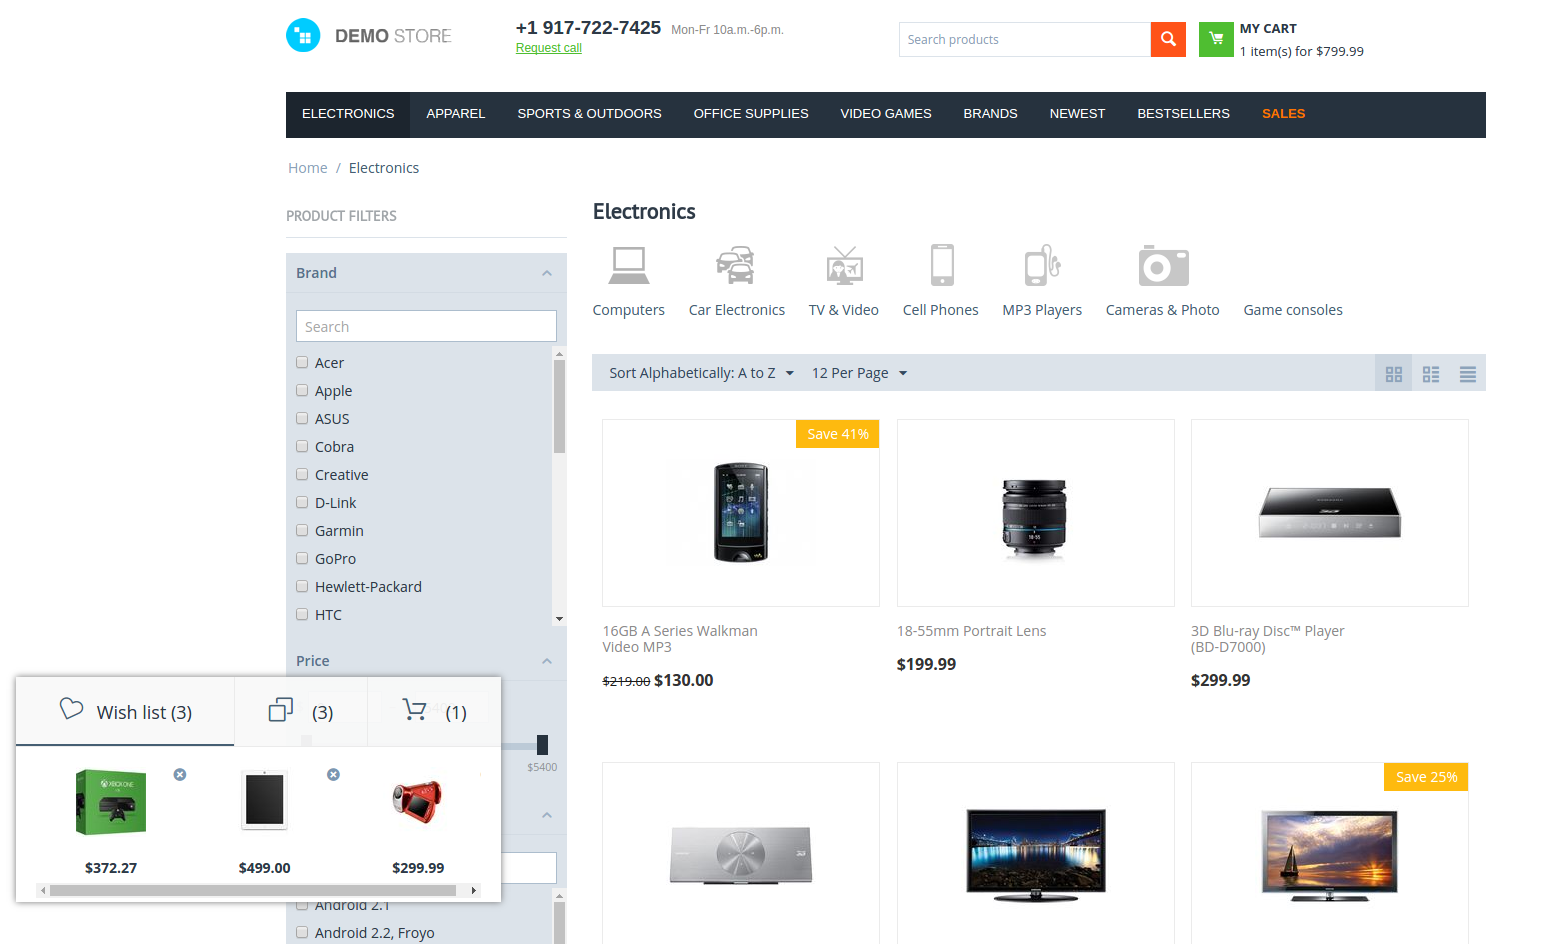 Product_lists_pop-up_007.png